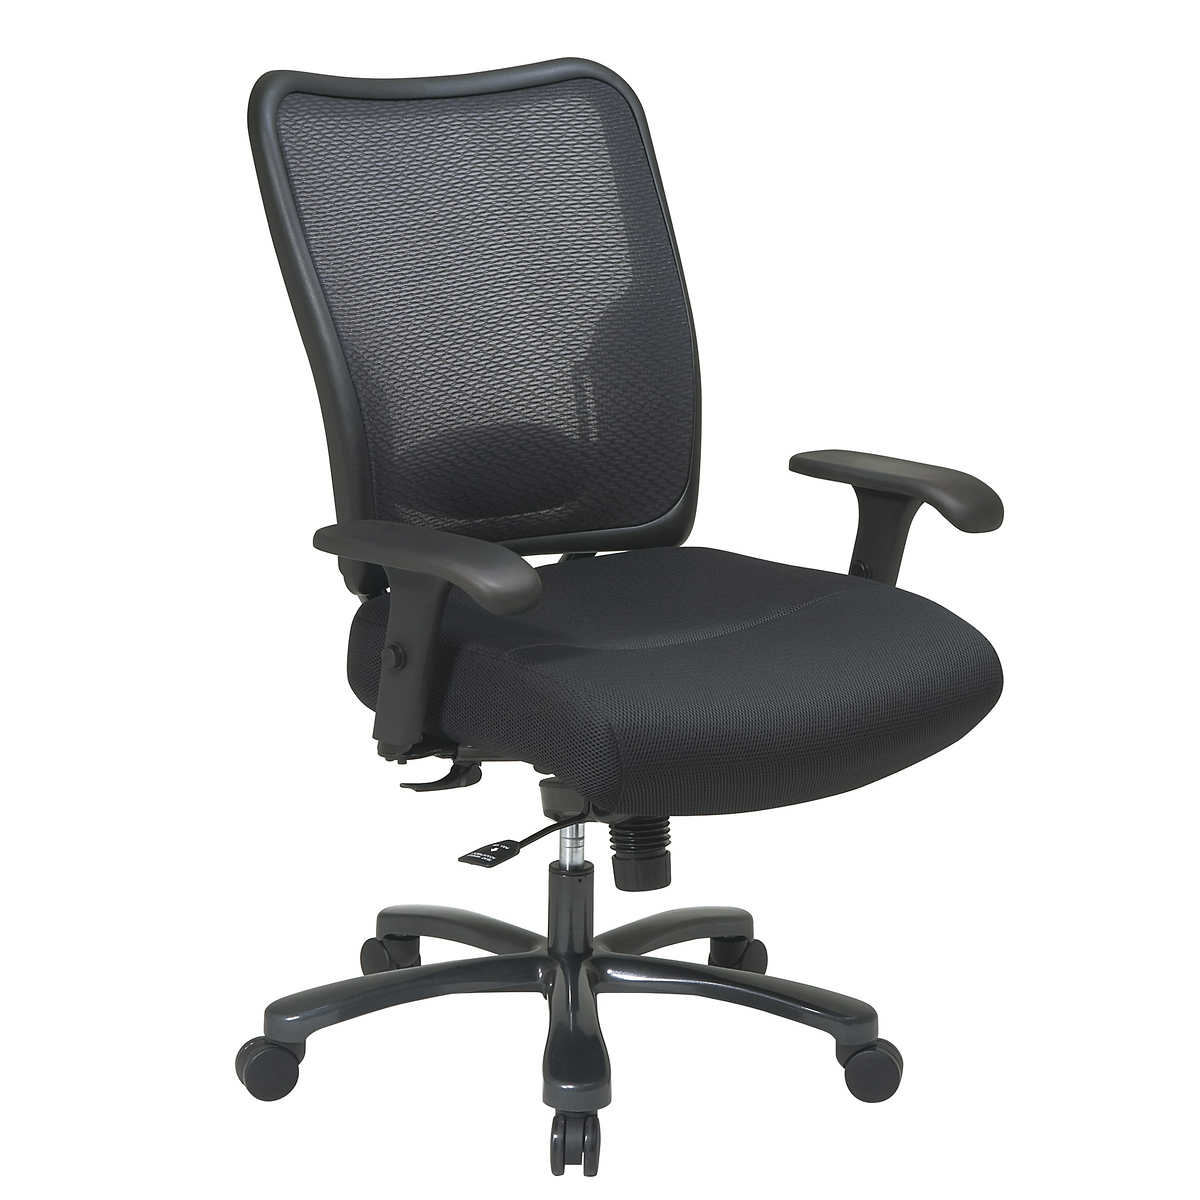 Best office chair for neck pain - Big And Tall Double Air Grid Back Ergonomic Office Chair